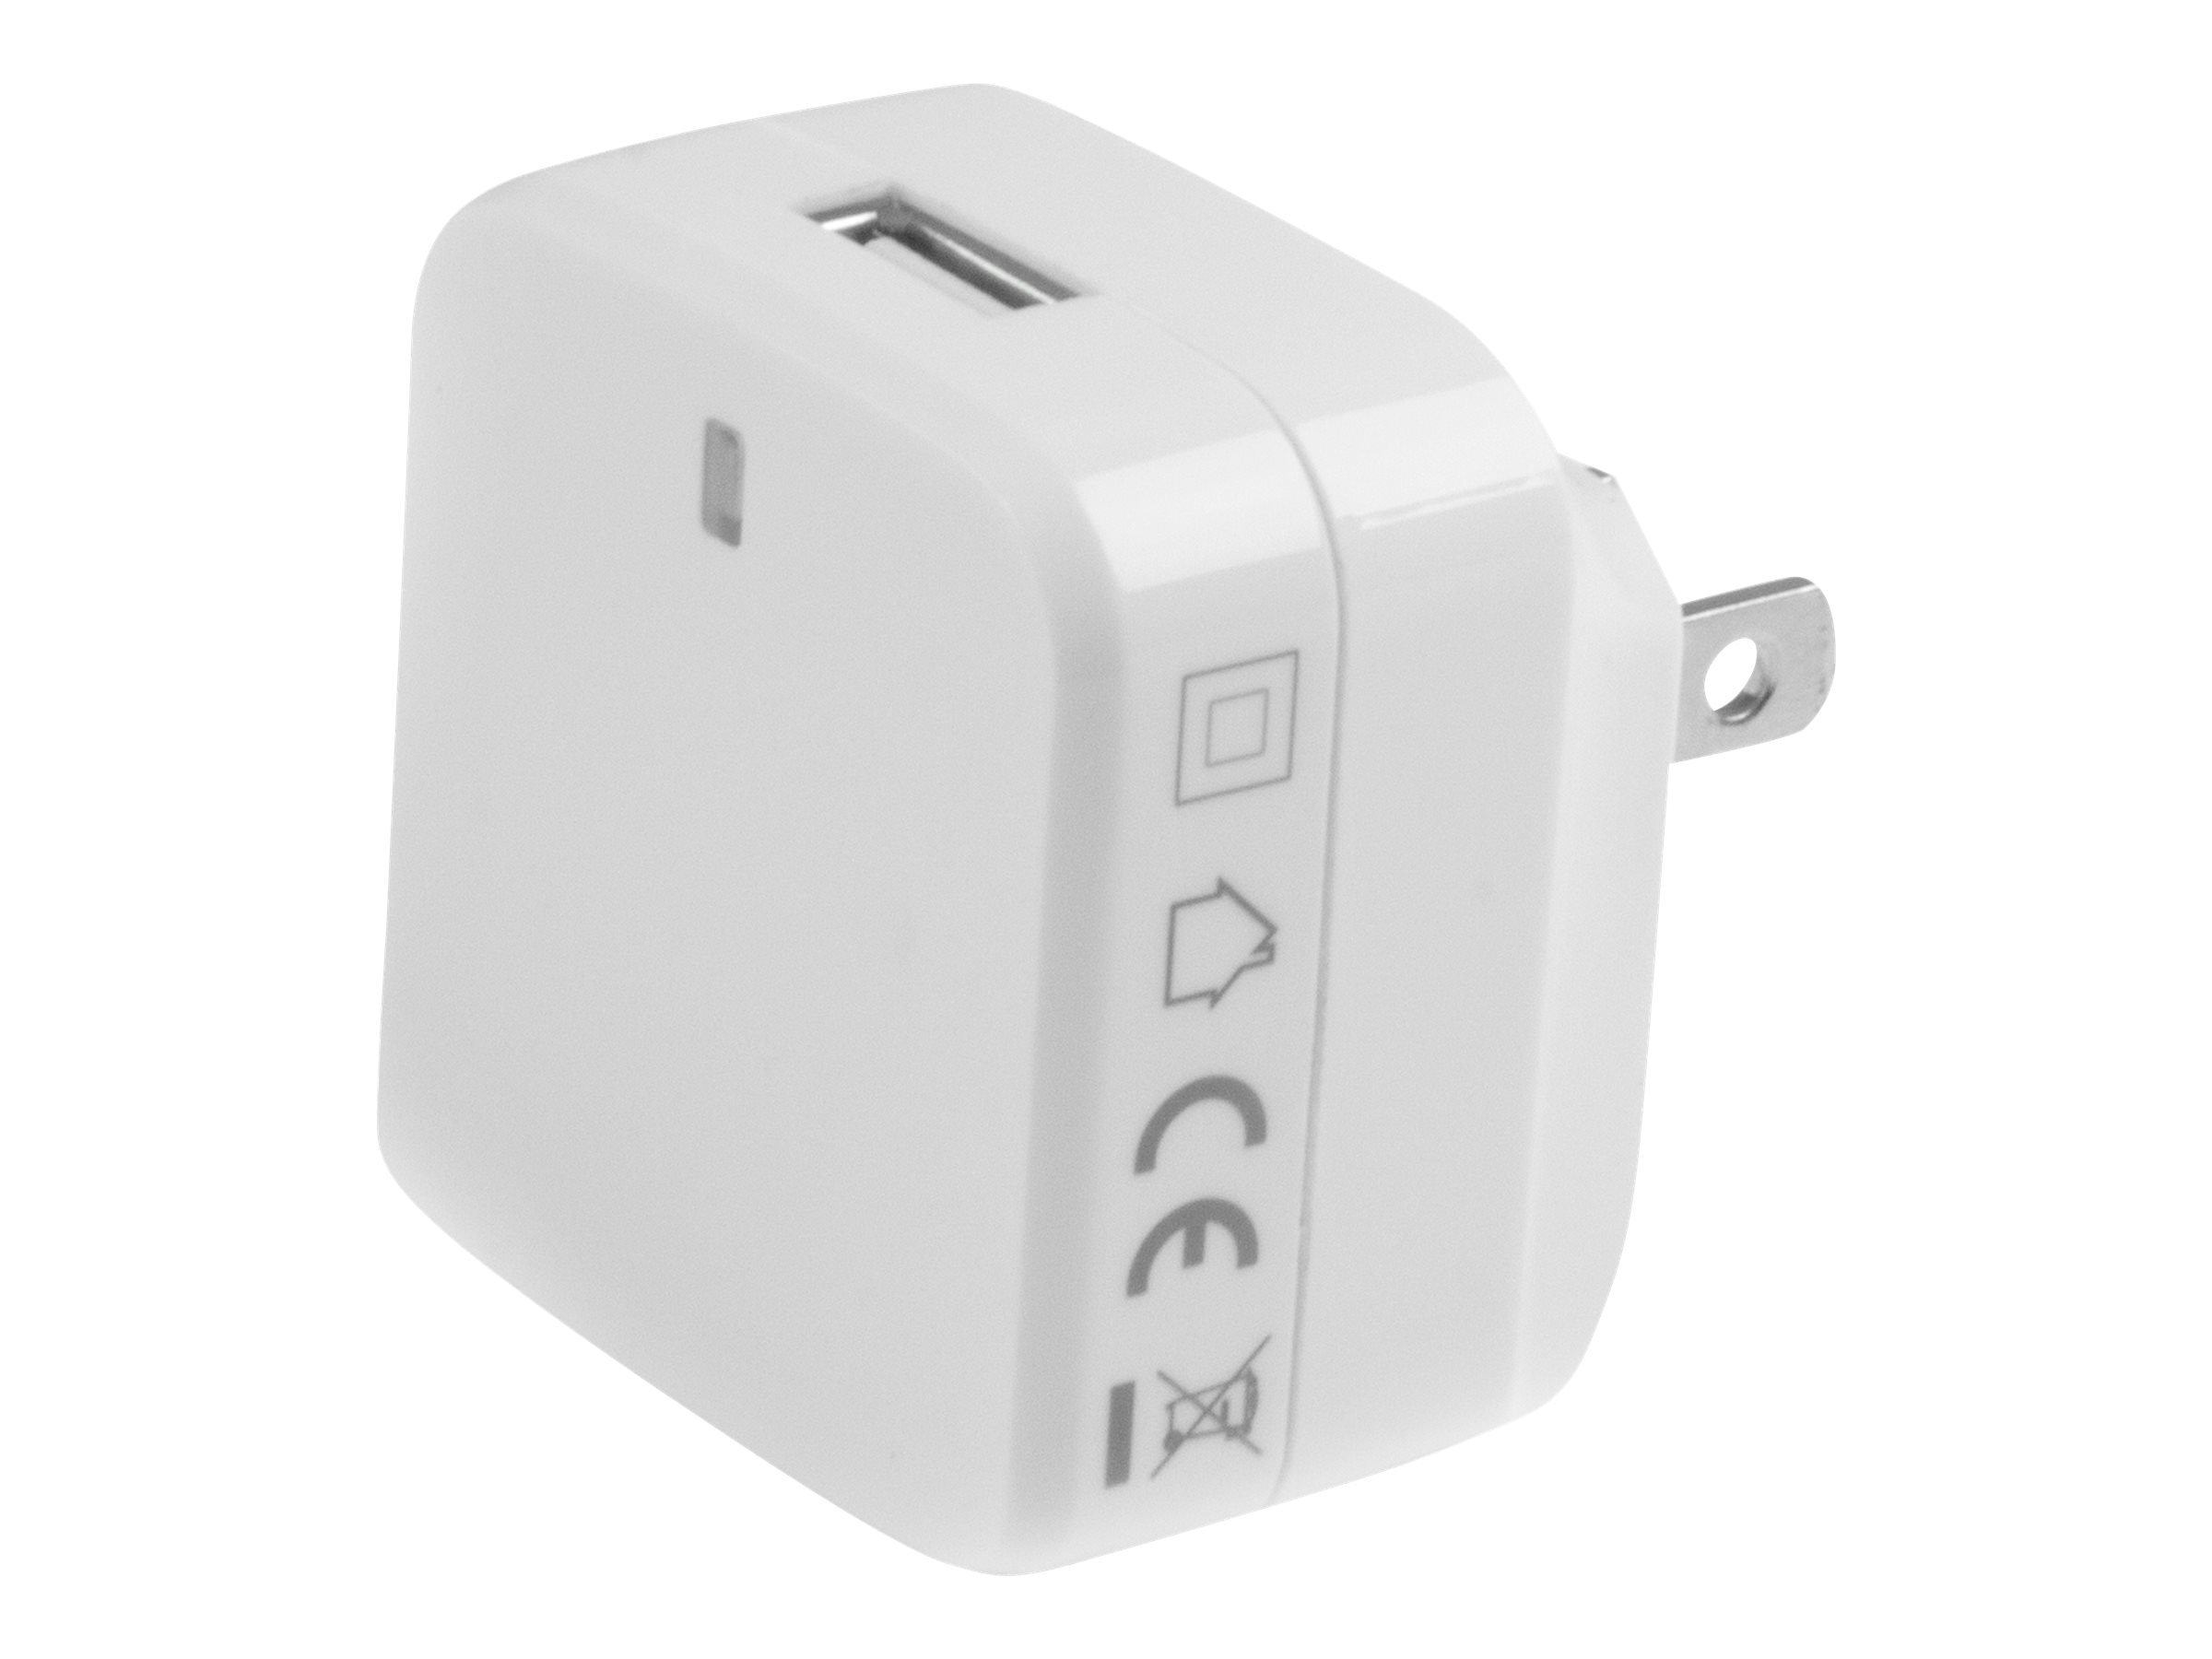 StarTech.com USB Wall Charger w  Quick Charge 2.0 for International Travel, White